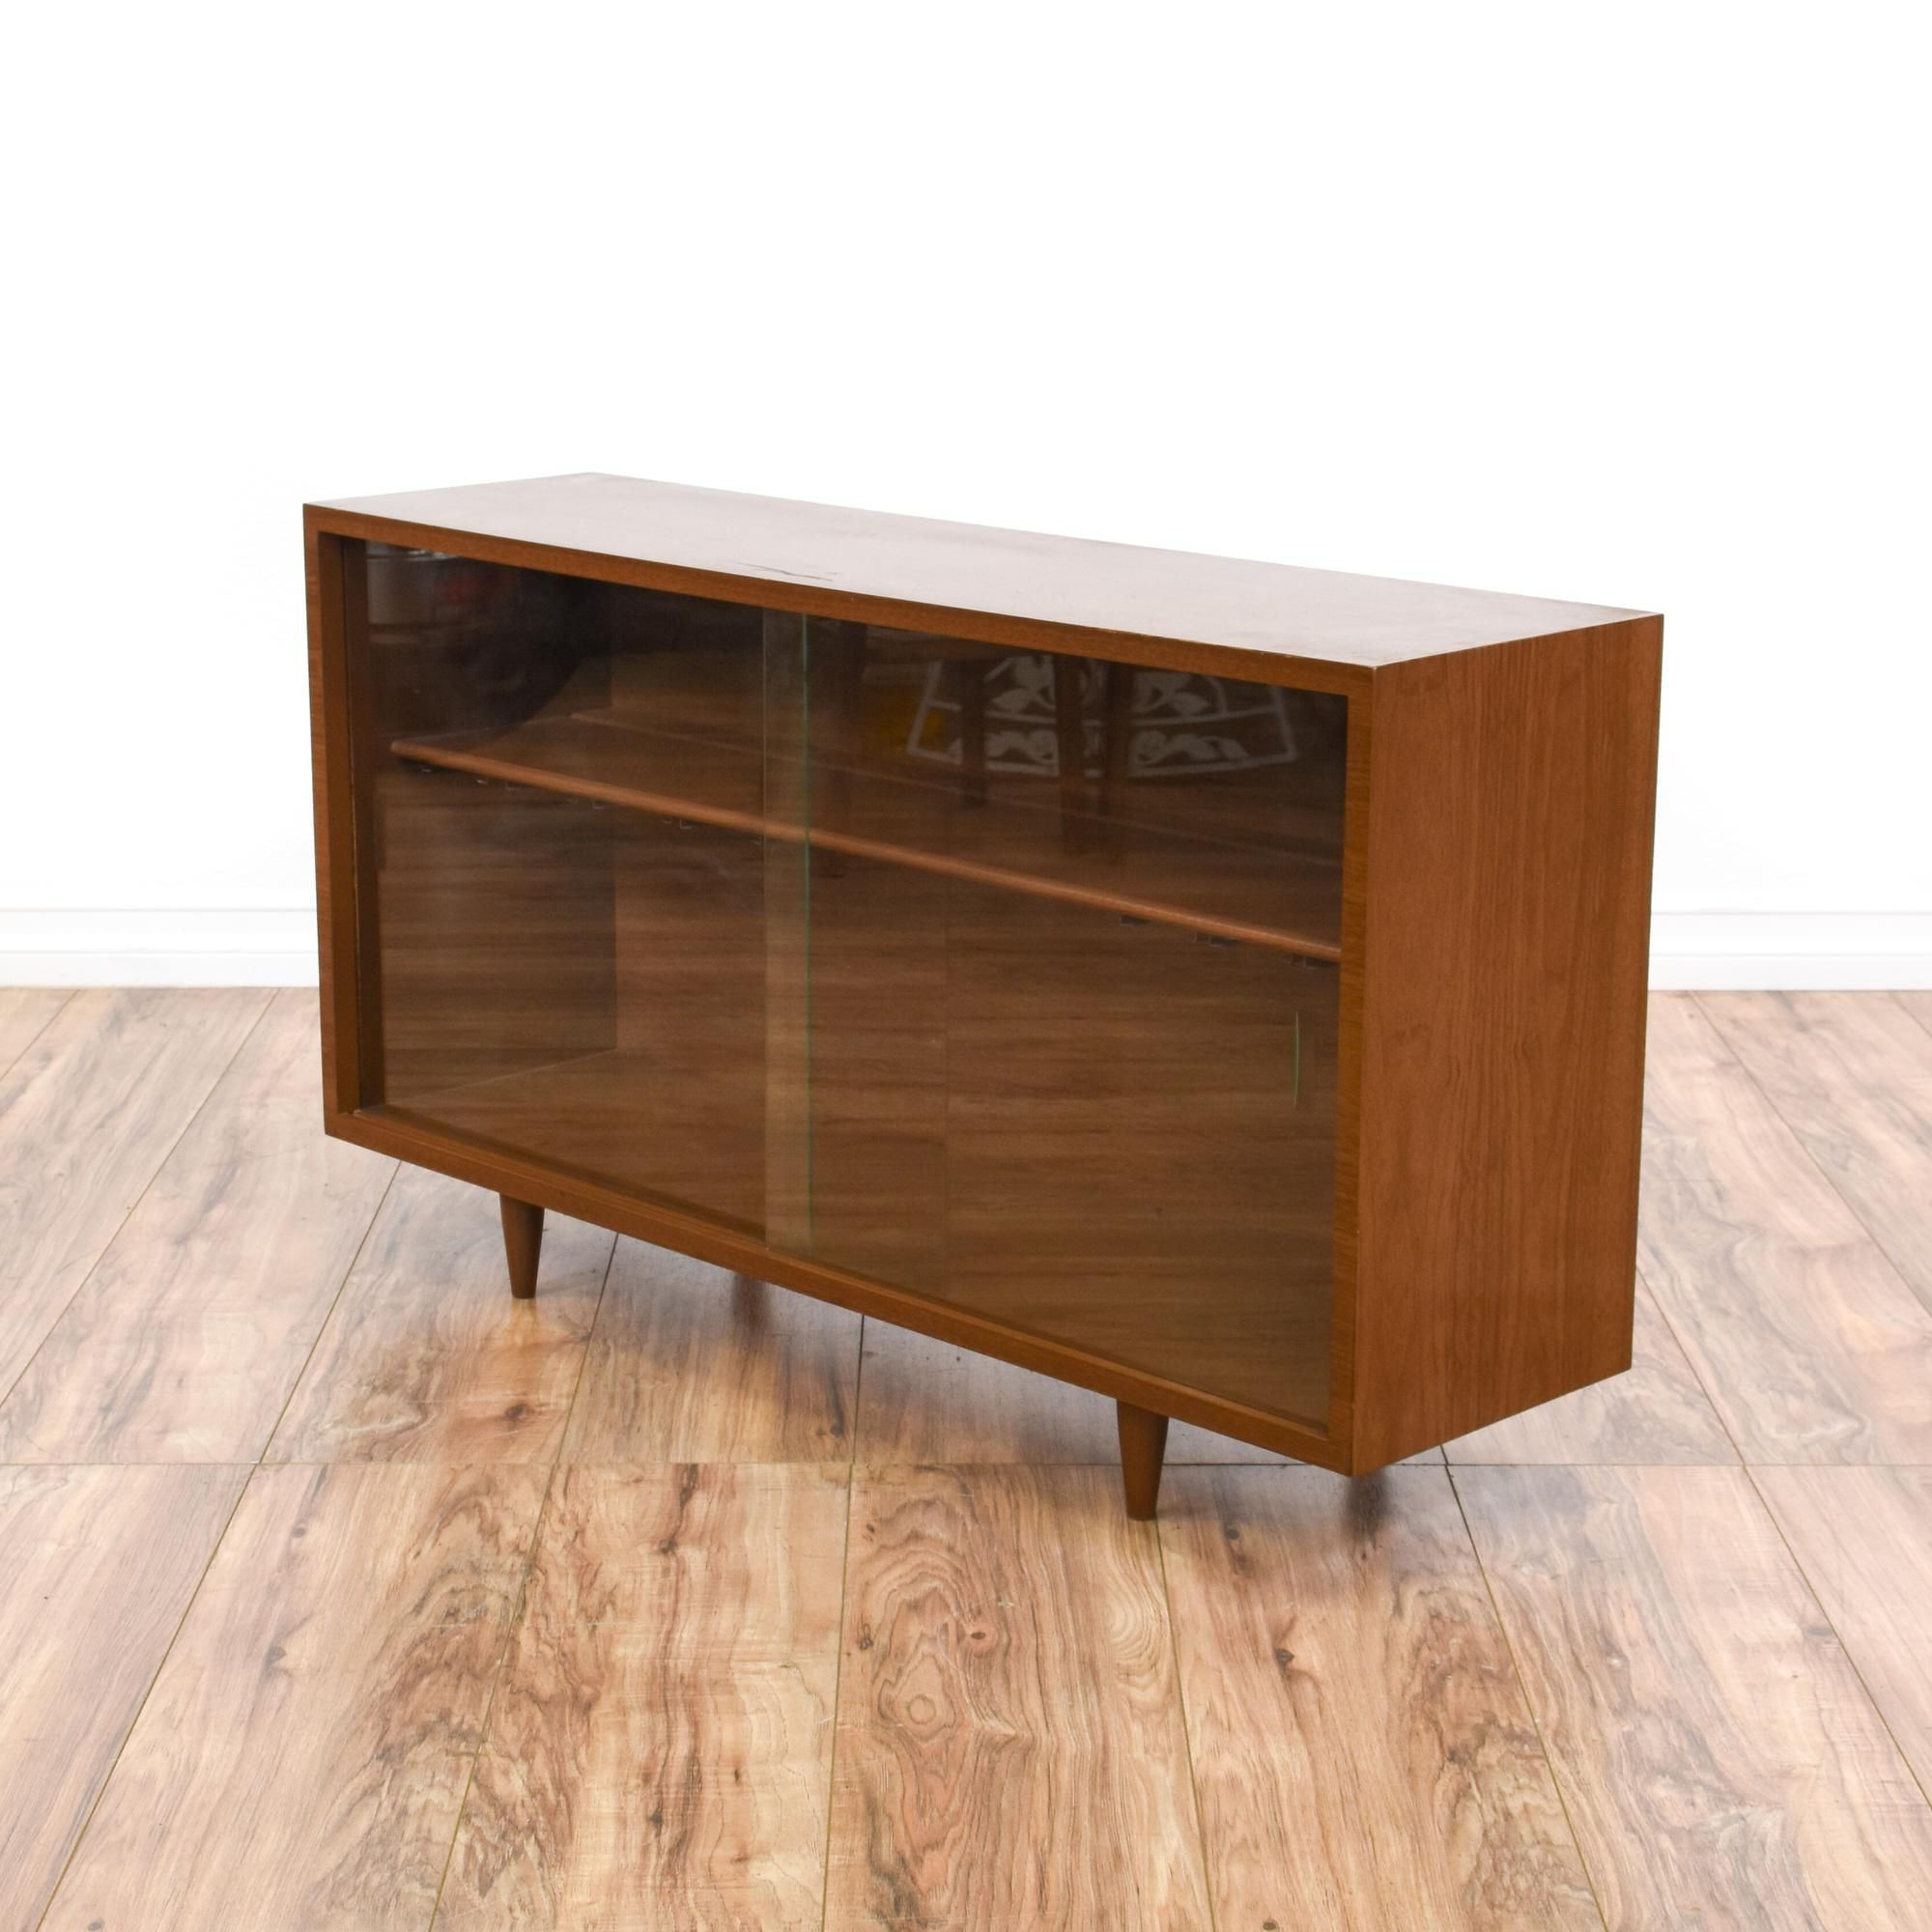 This Low Mid Century Modern Display Case Is Featured In A Regarding Contemporary Wooden Buffets With One Side Door Storage Cabinets And Two Drawers (View 17 of 20)